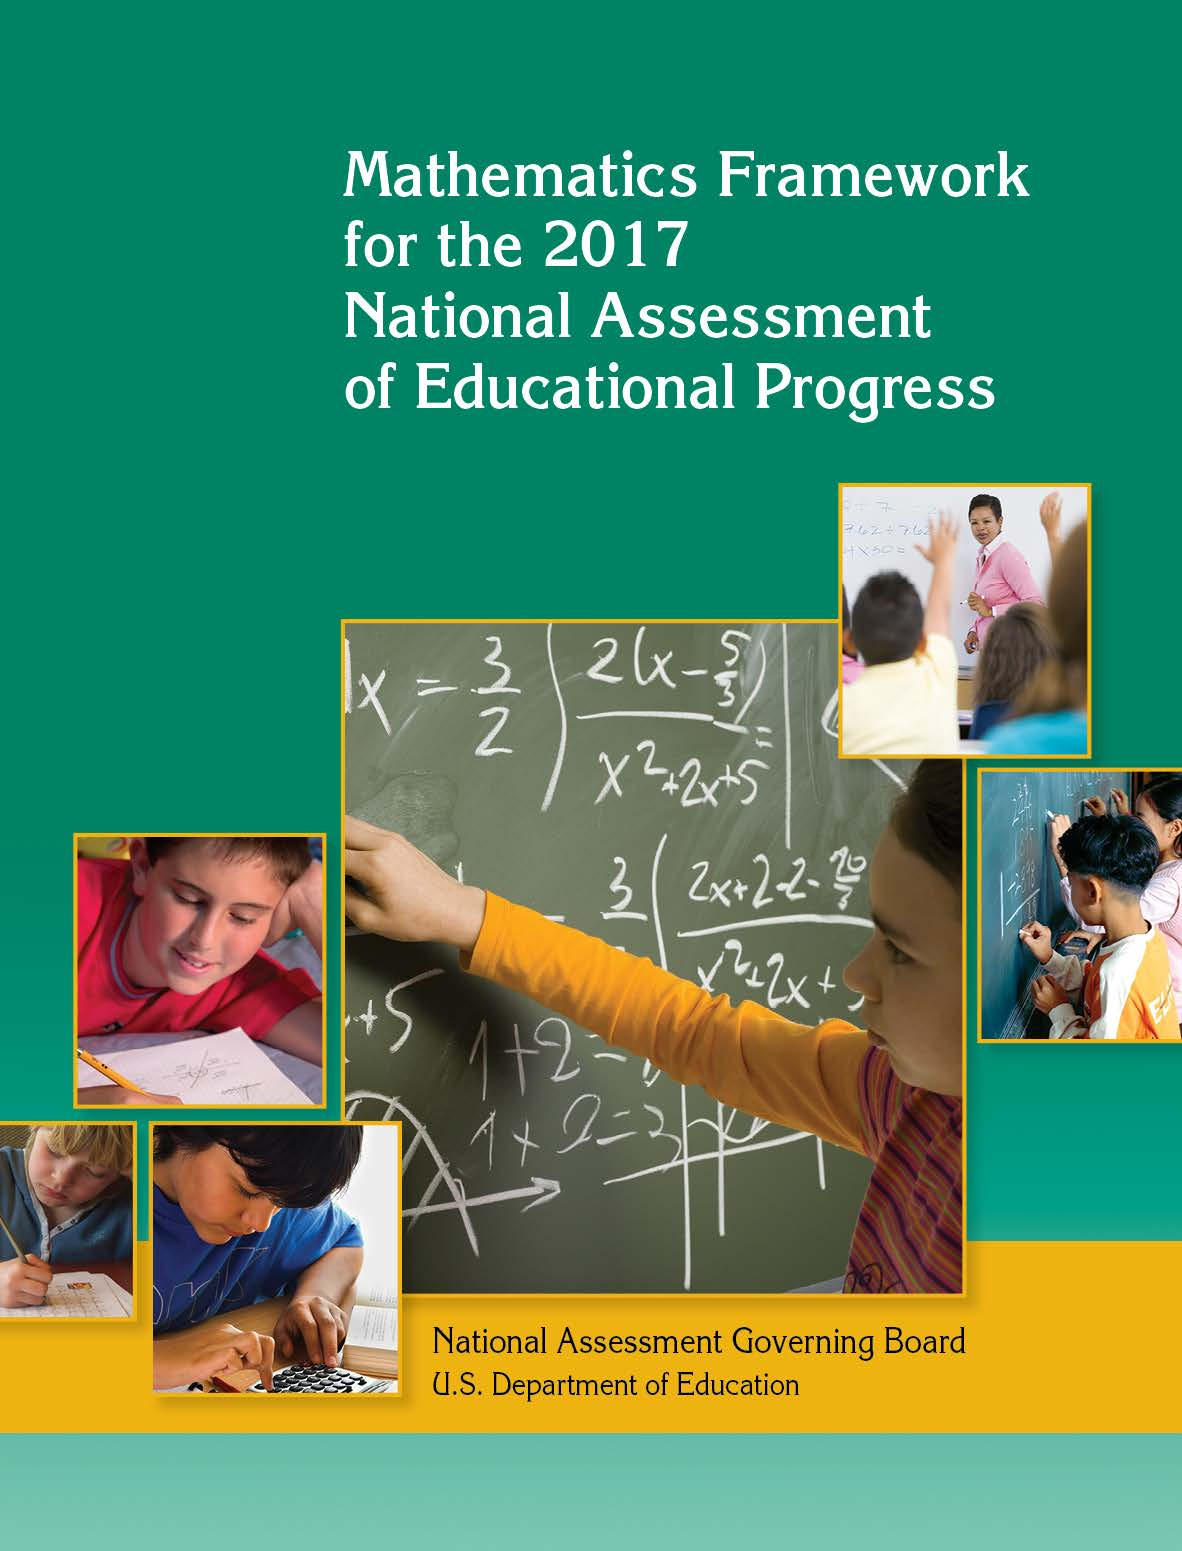 2017 Mathematics Framework